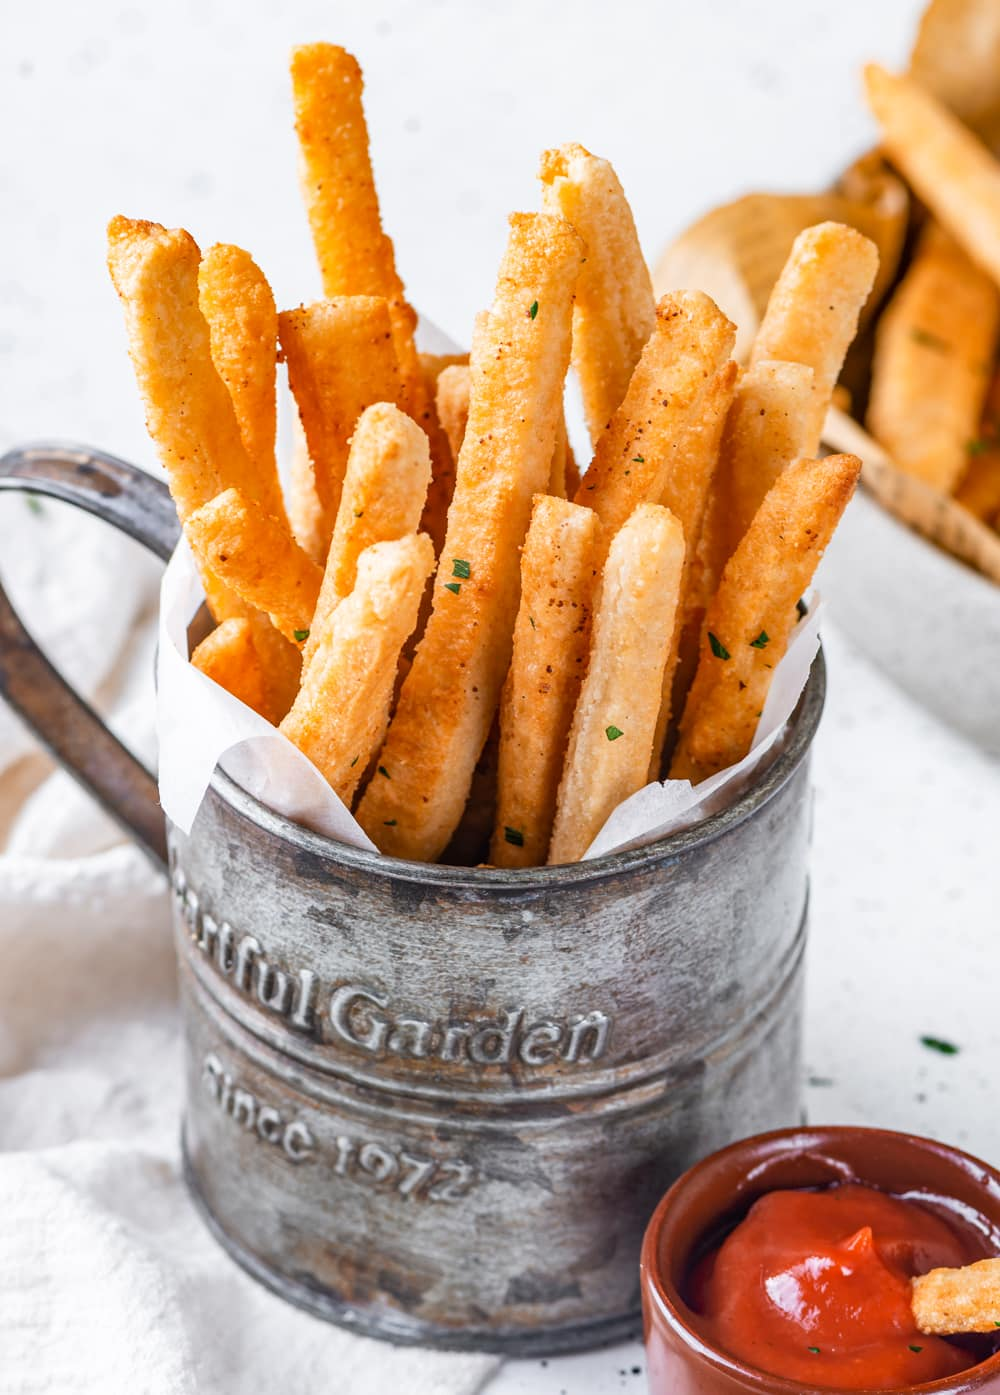 A metal cup filled with keto french fries standing upright on top of a piece of parchment paper. There is a small cup of ketchup in front of the metal cup with a fry in it. The metal cup is half on a white tablecloth and half on a white table. The ketchup is on the table.